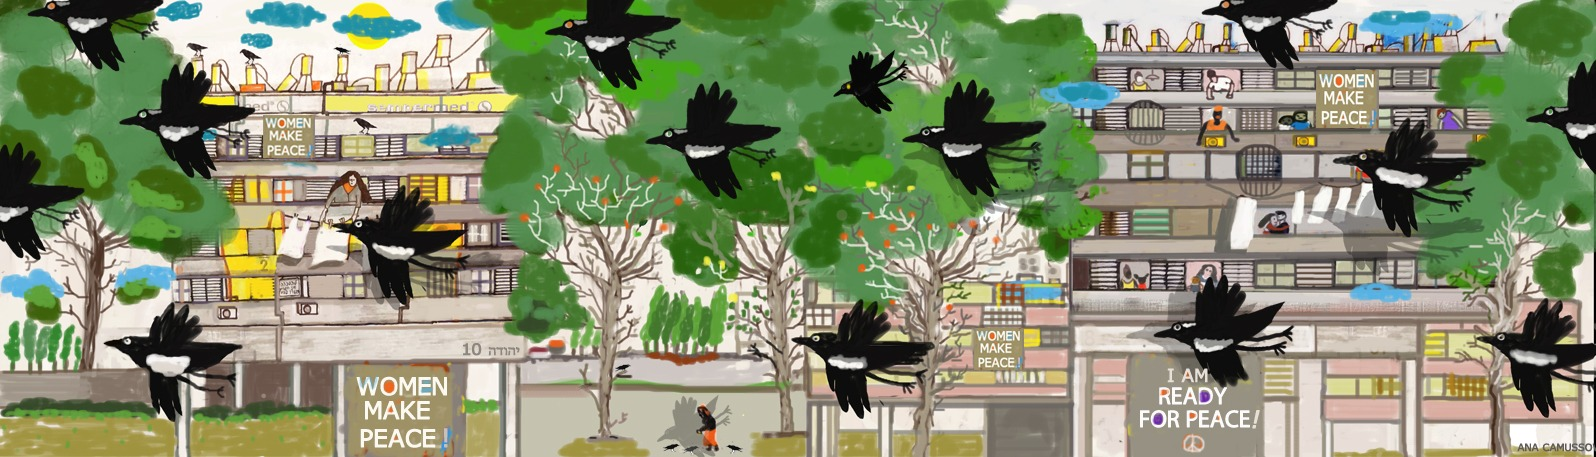 ,Make peace, illustrated by Ana Camusso Wapner